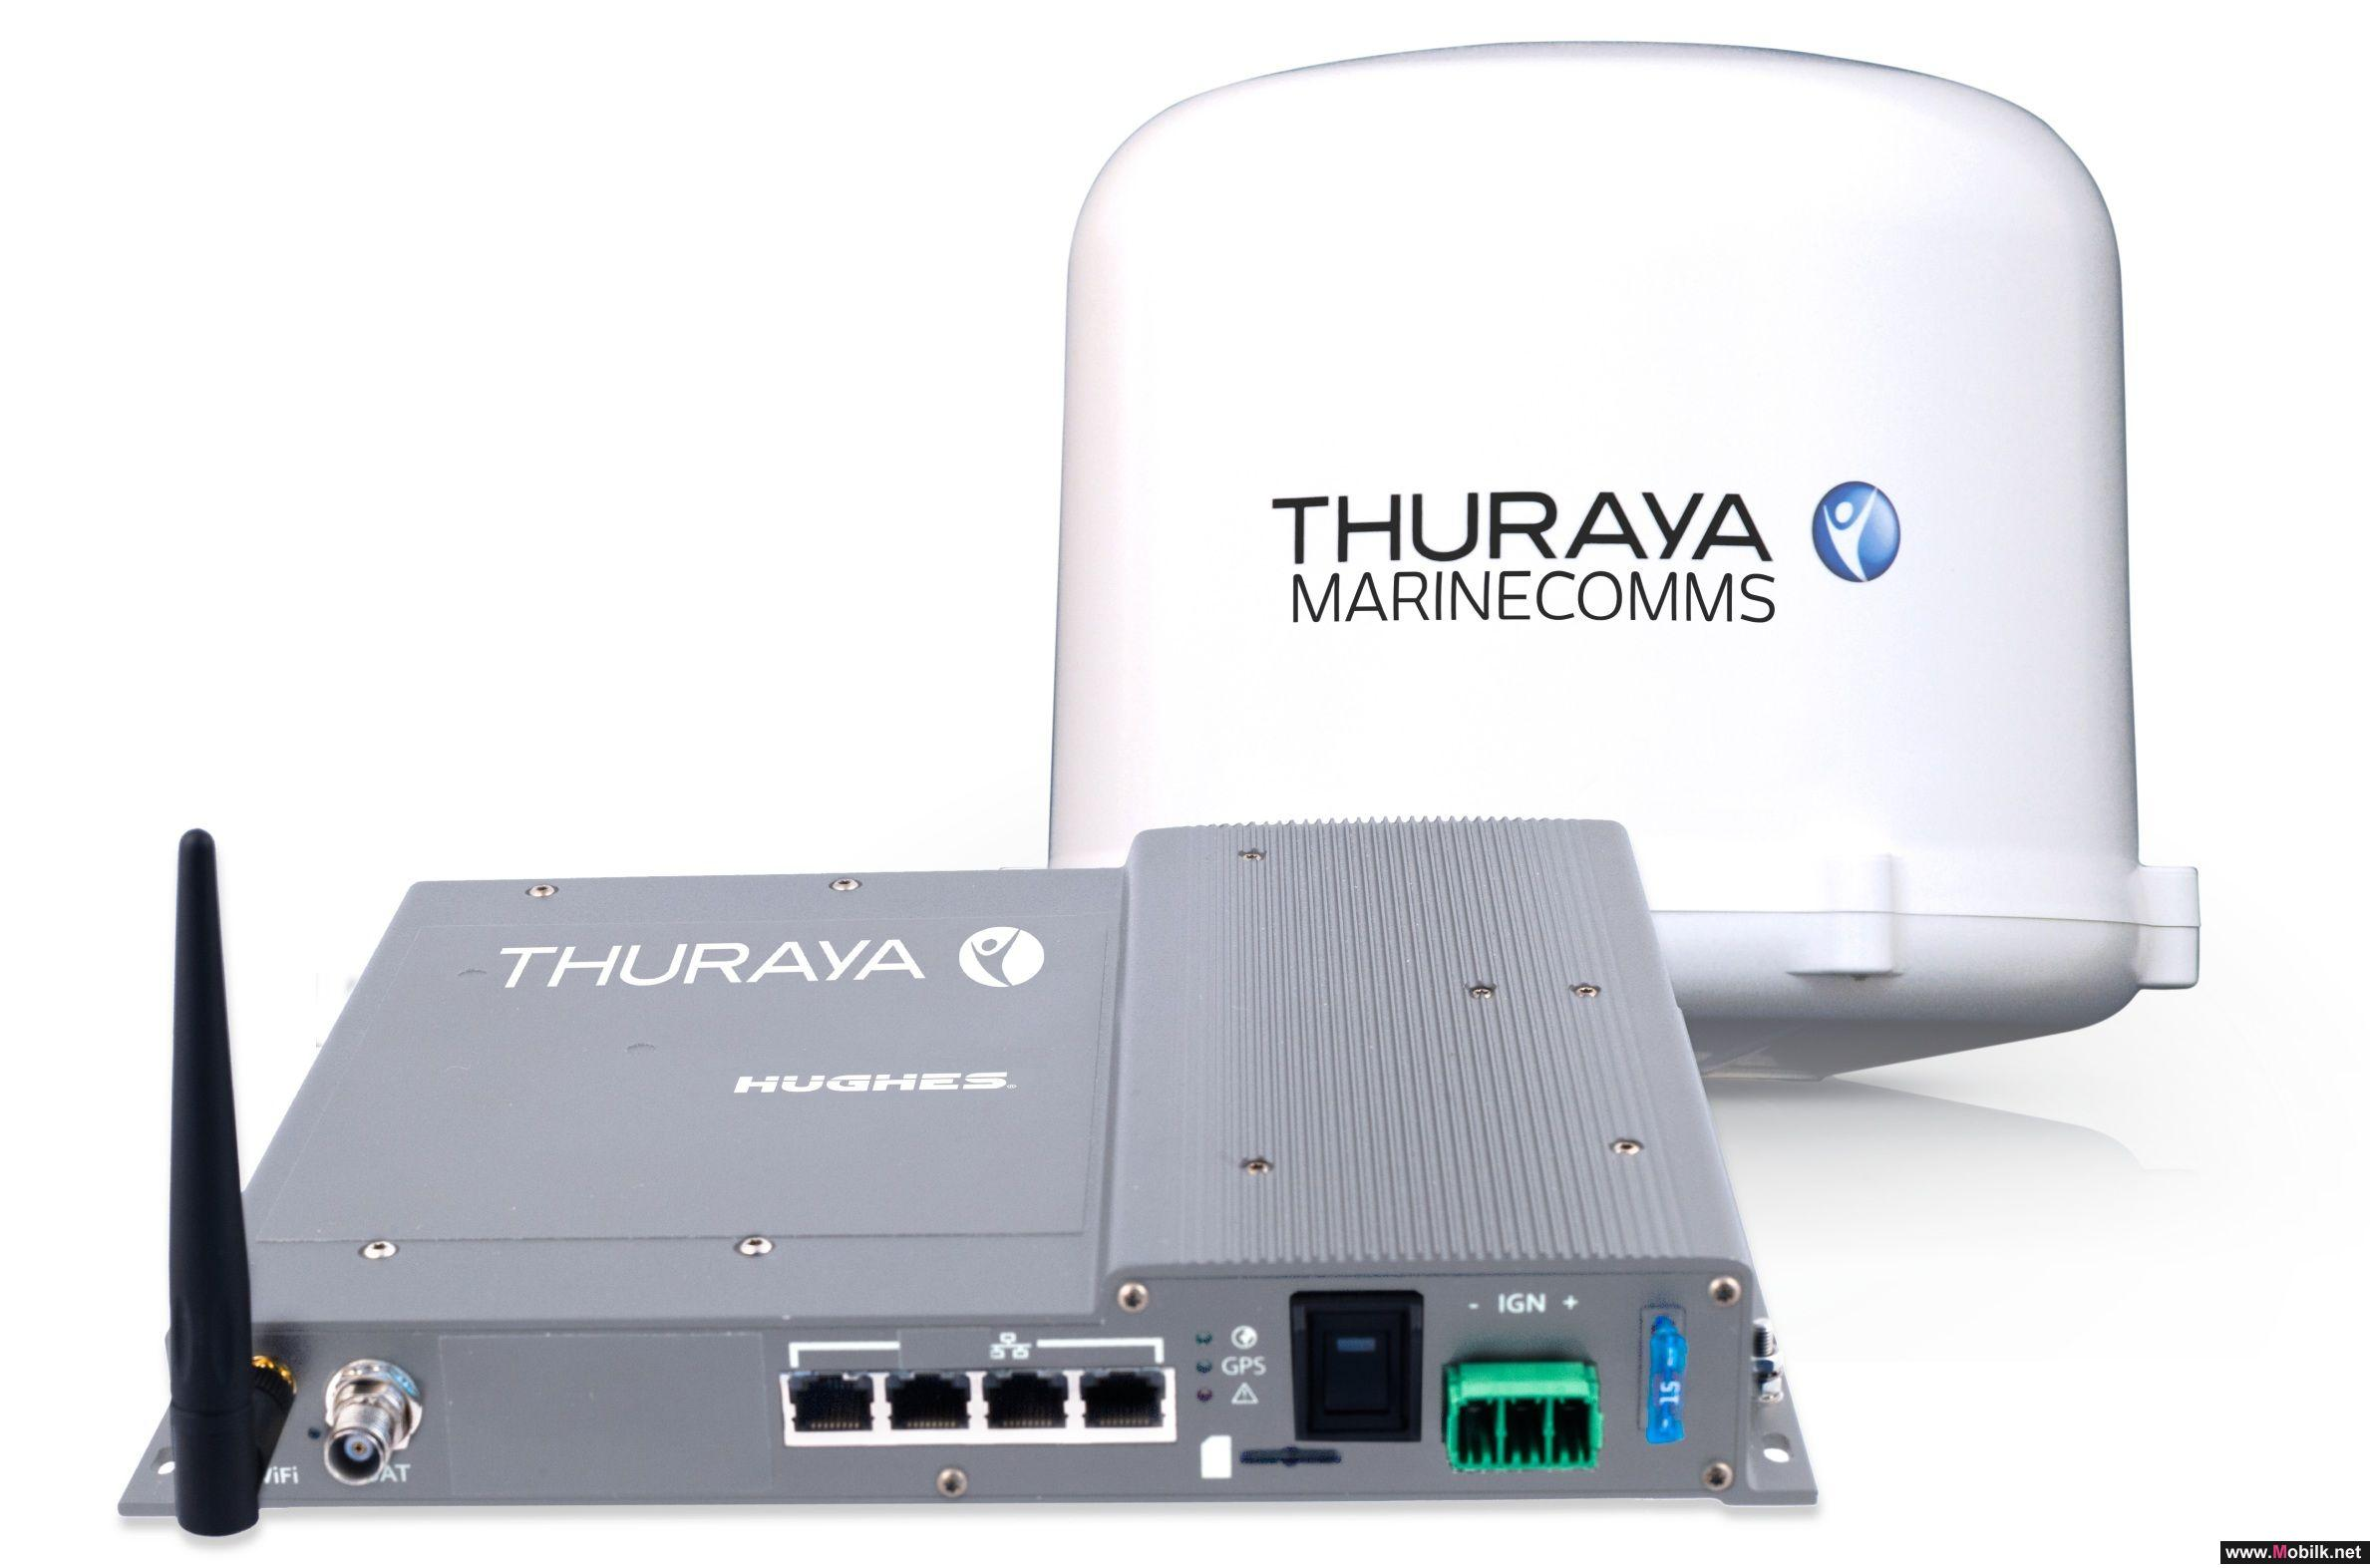 Thuraya to Showcase at OPV Middle East Event